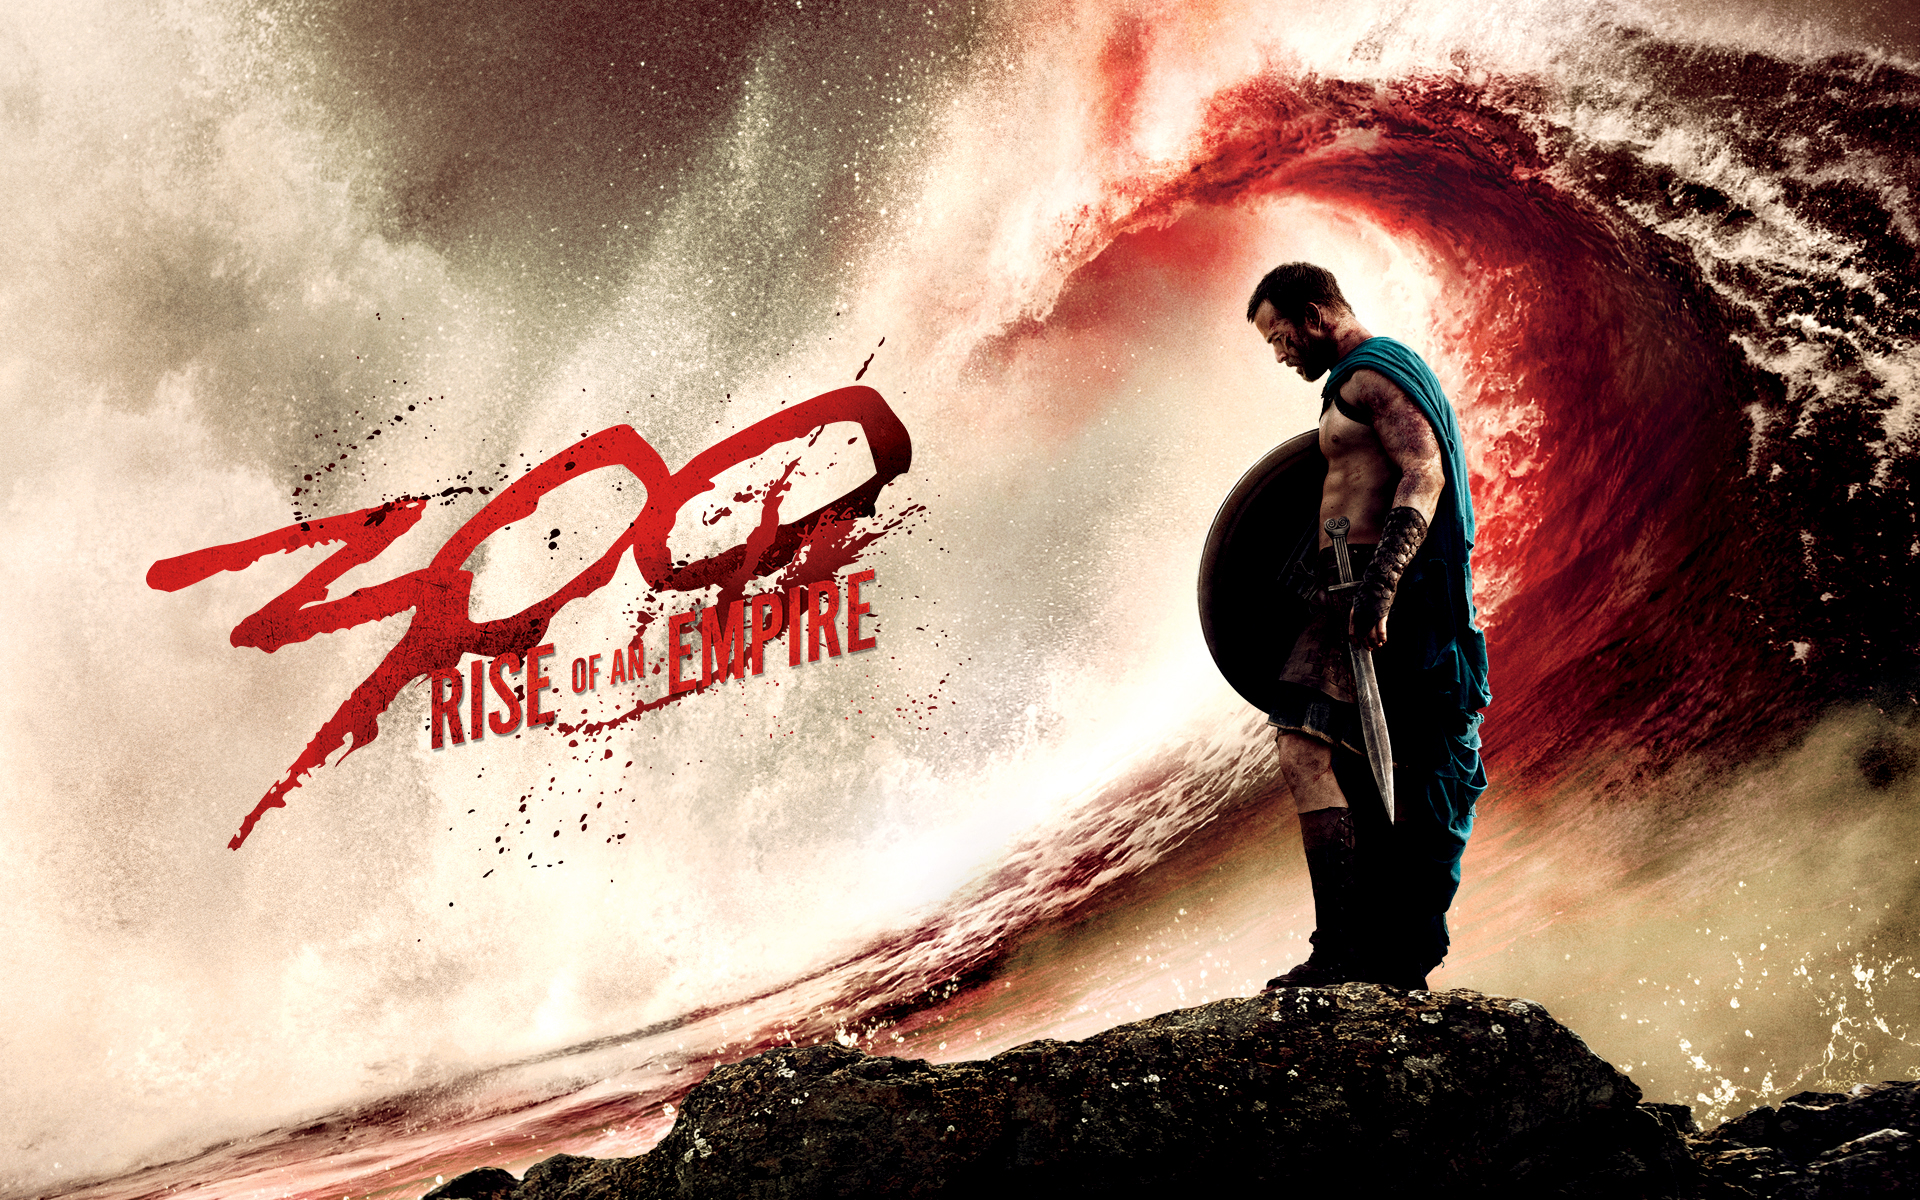 300 rise of empire movie